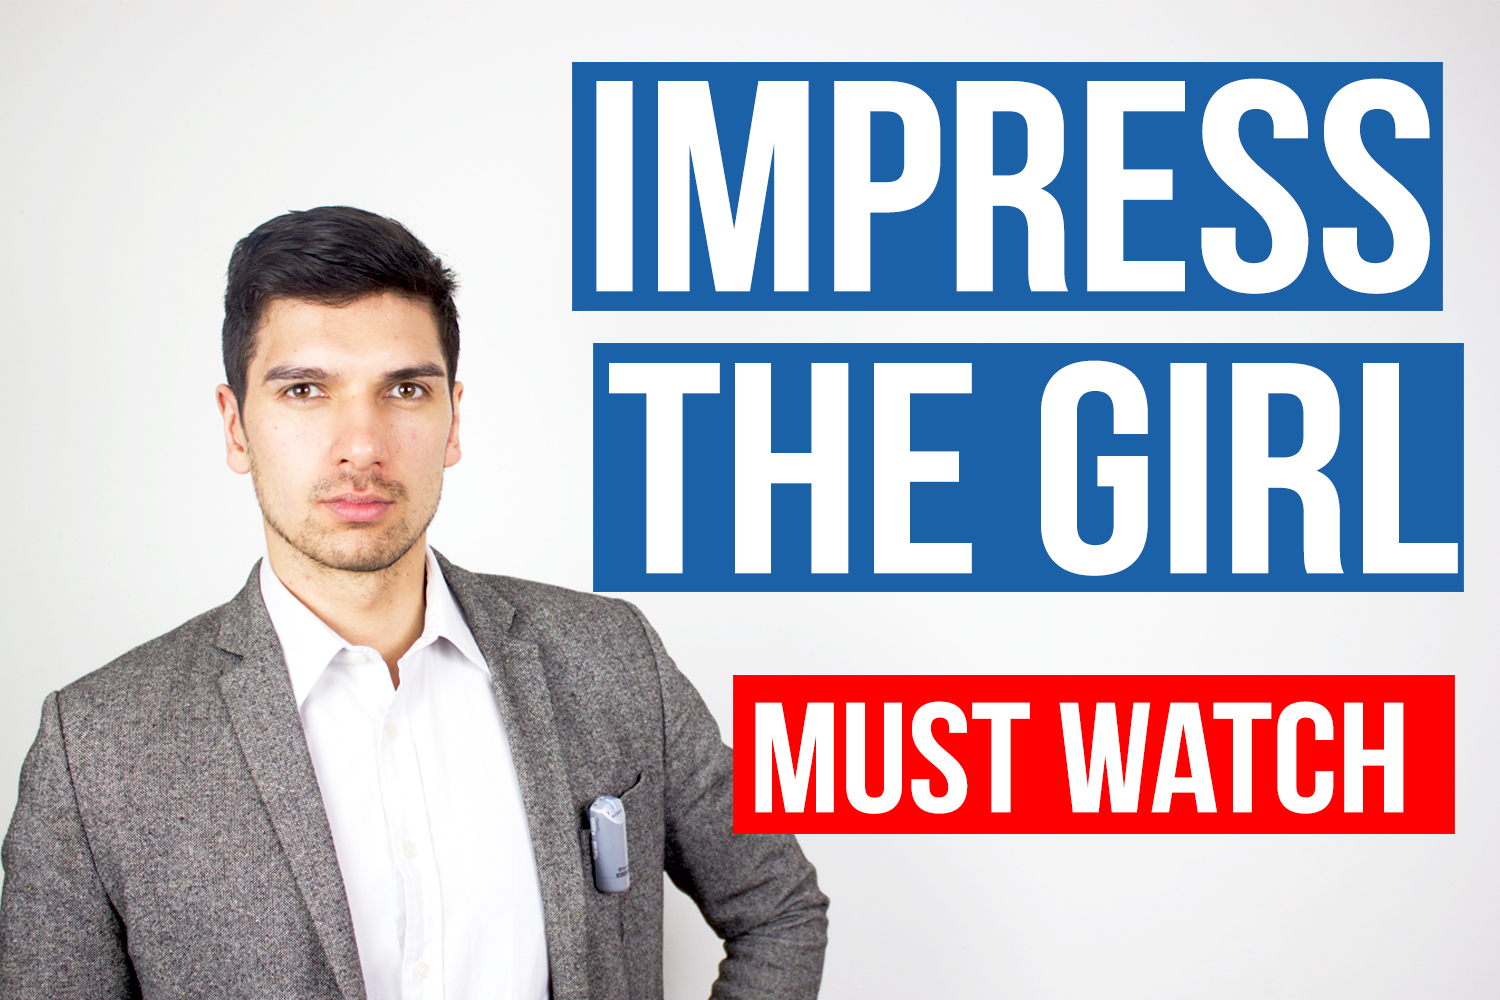 How to impress a girl on a dating site